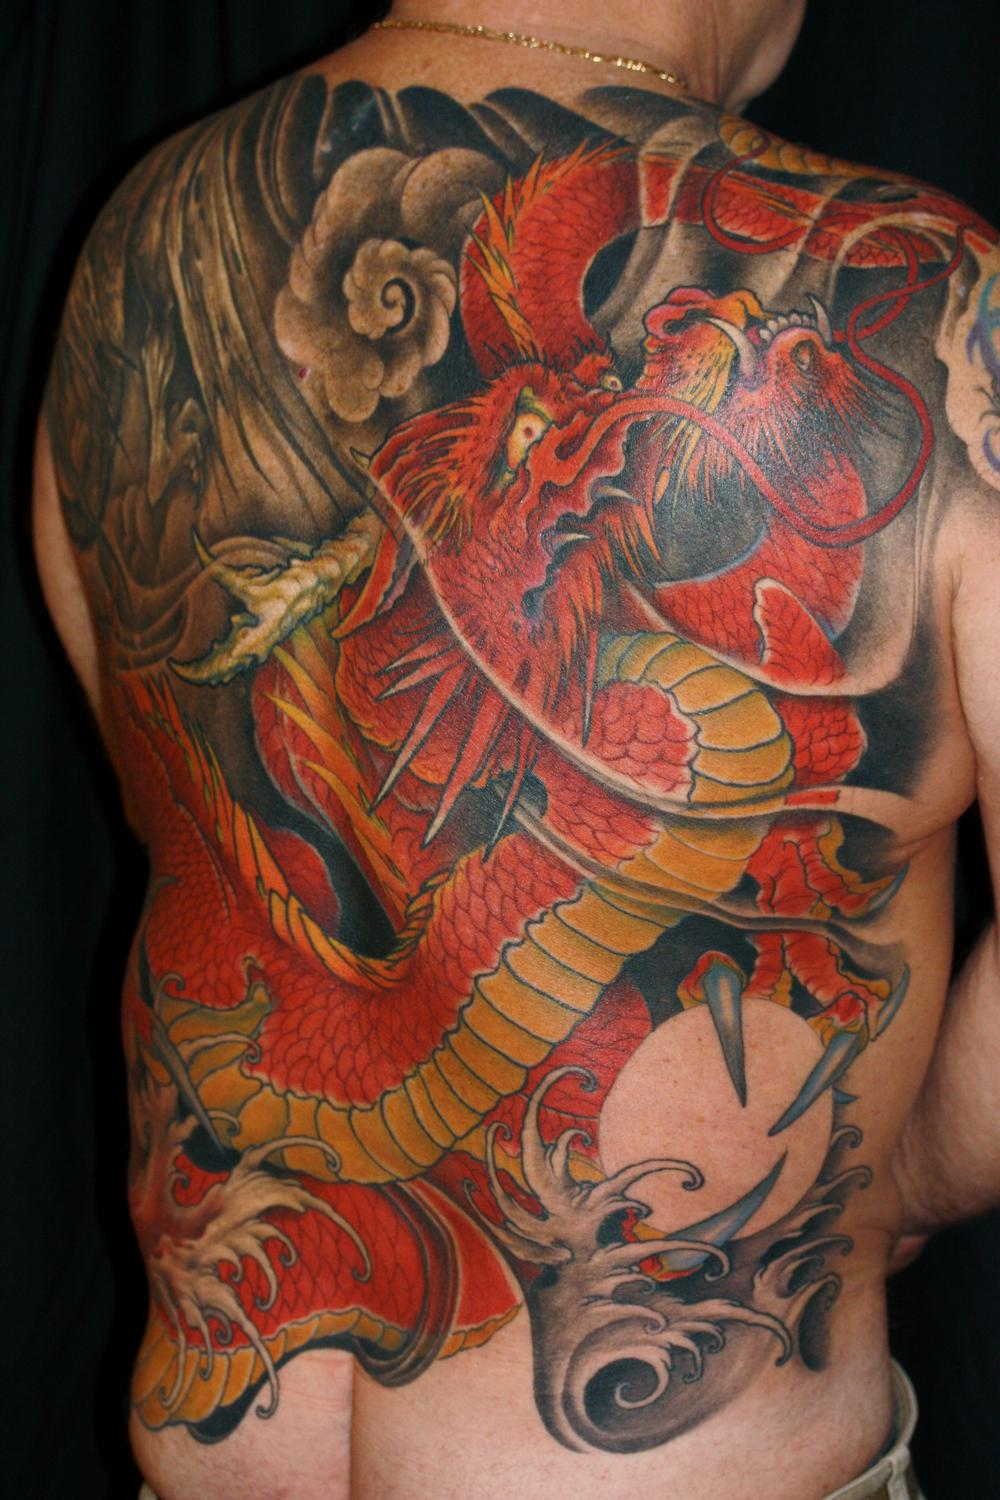 Tattoos - japanese style dragon - 55338